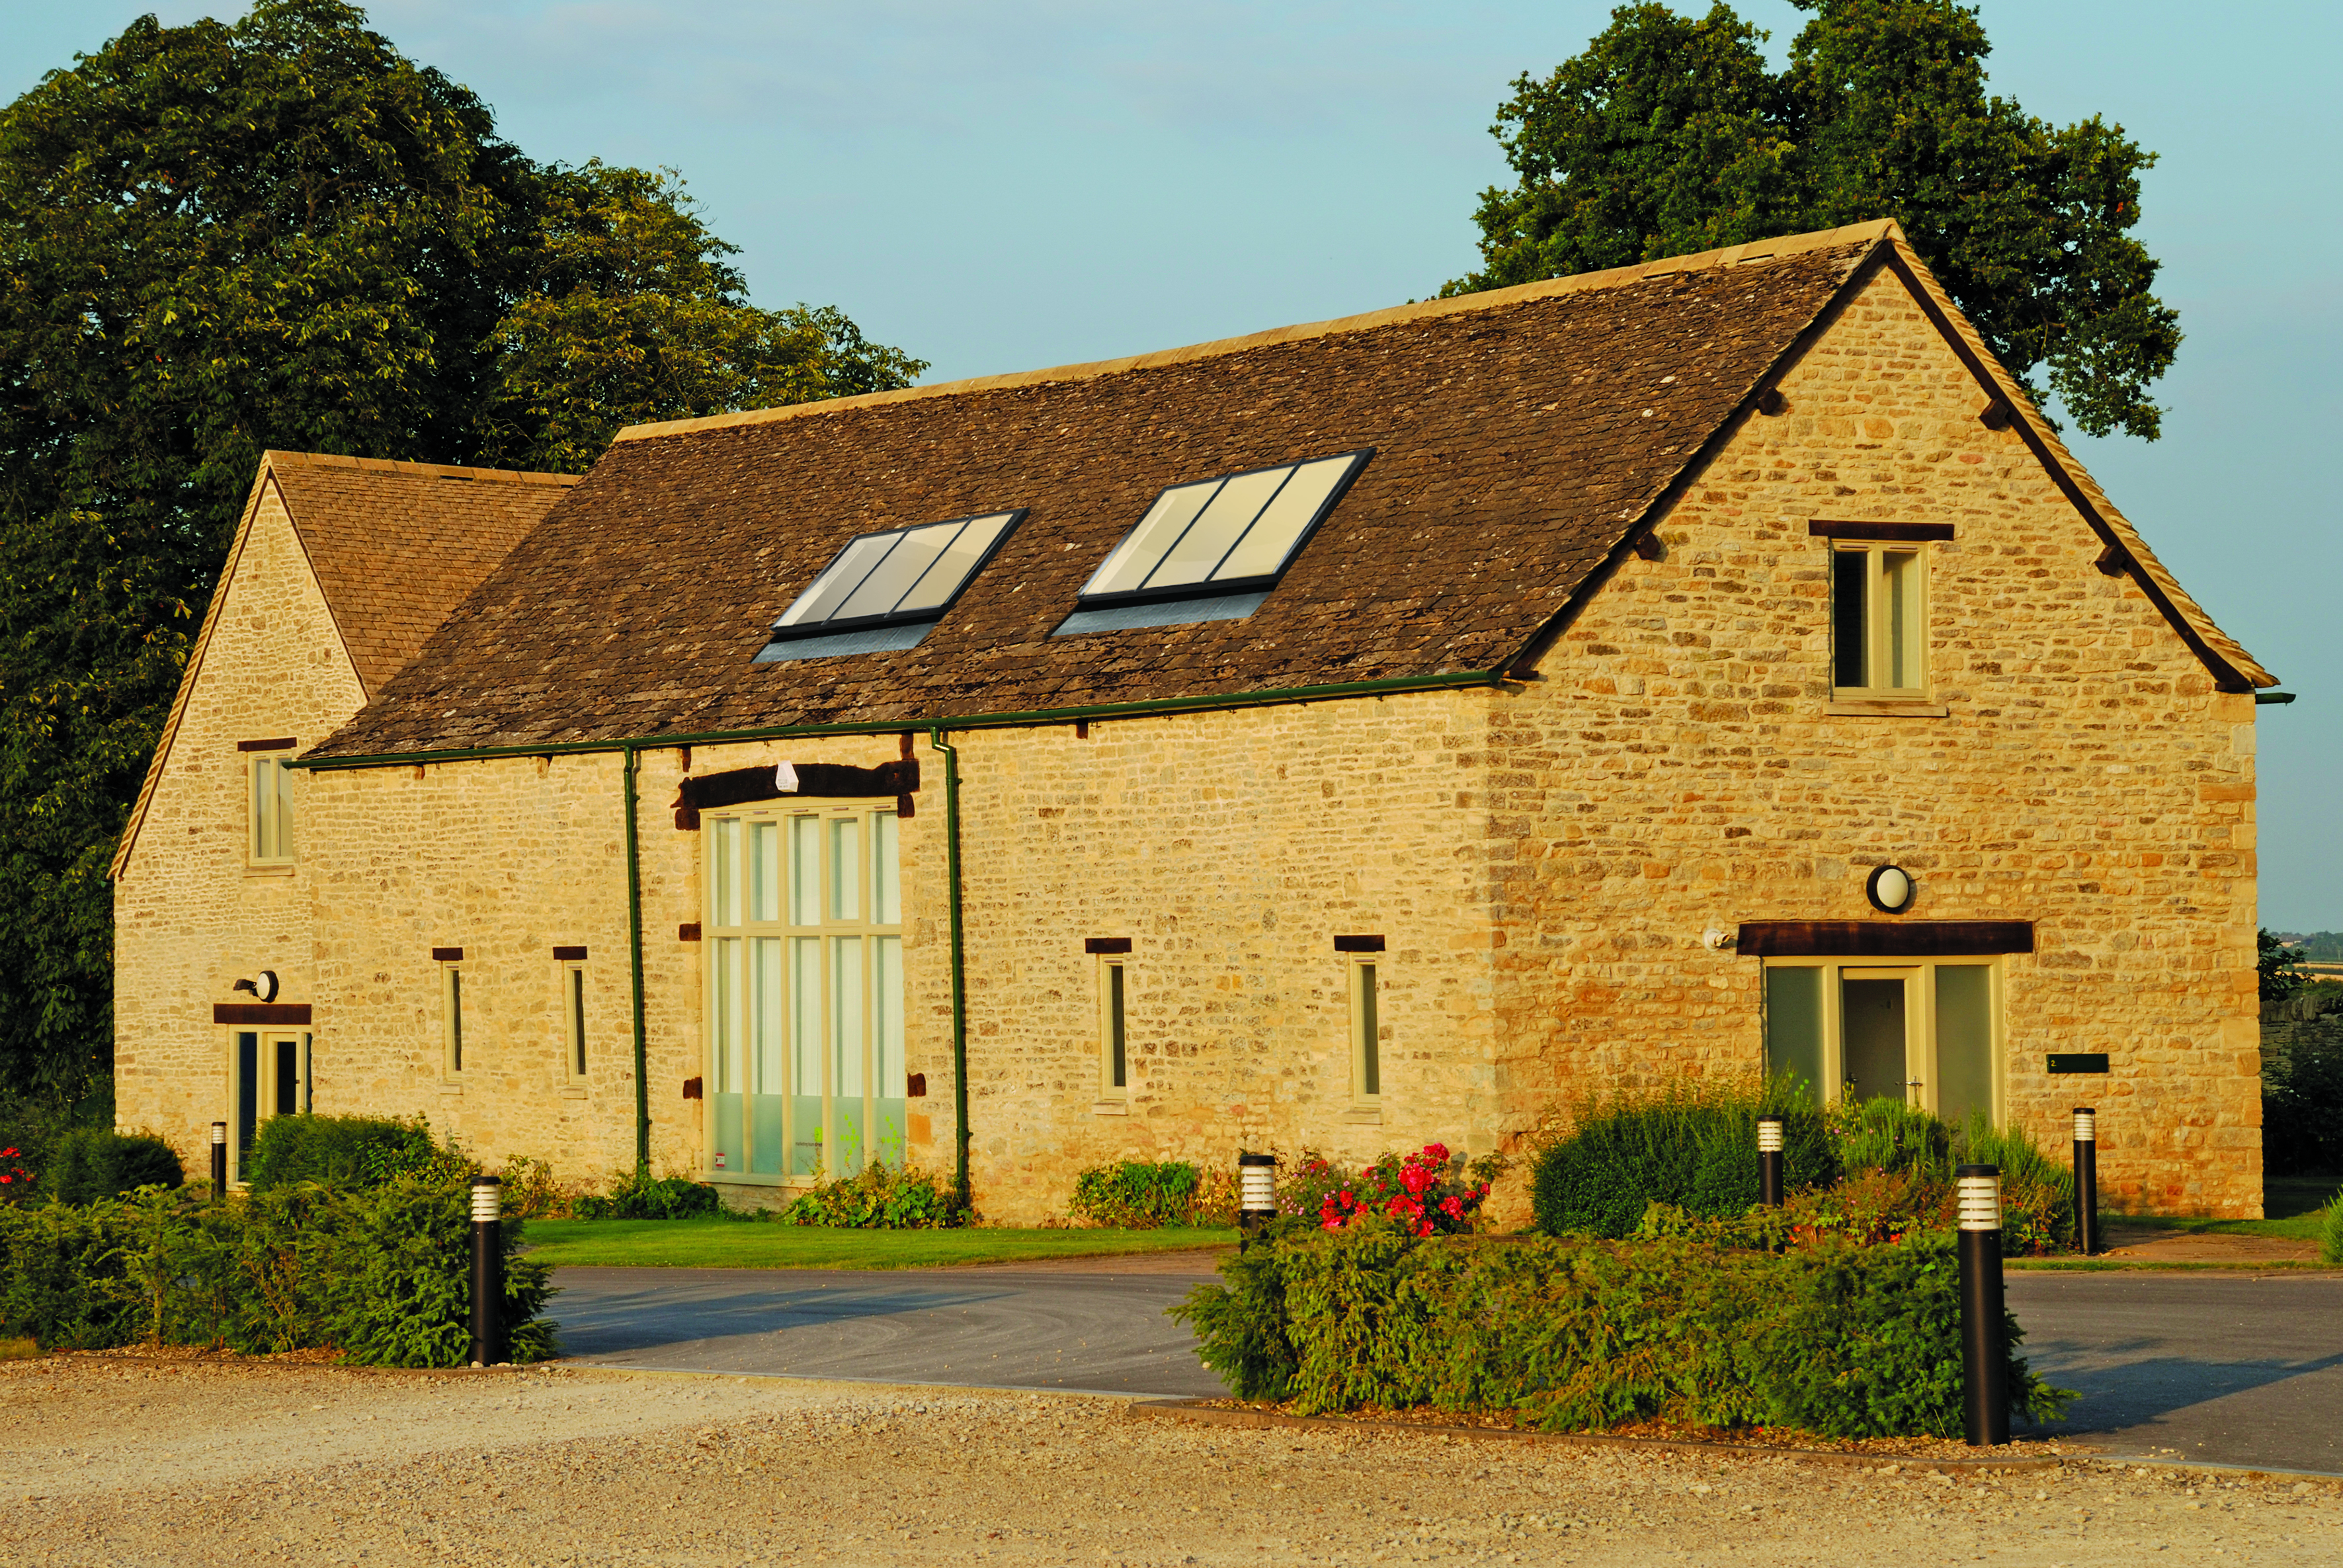 Barn conversion with conservation luxlite rooflights